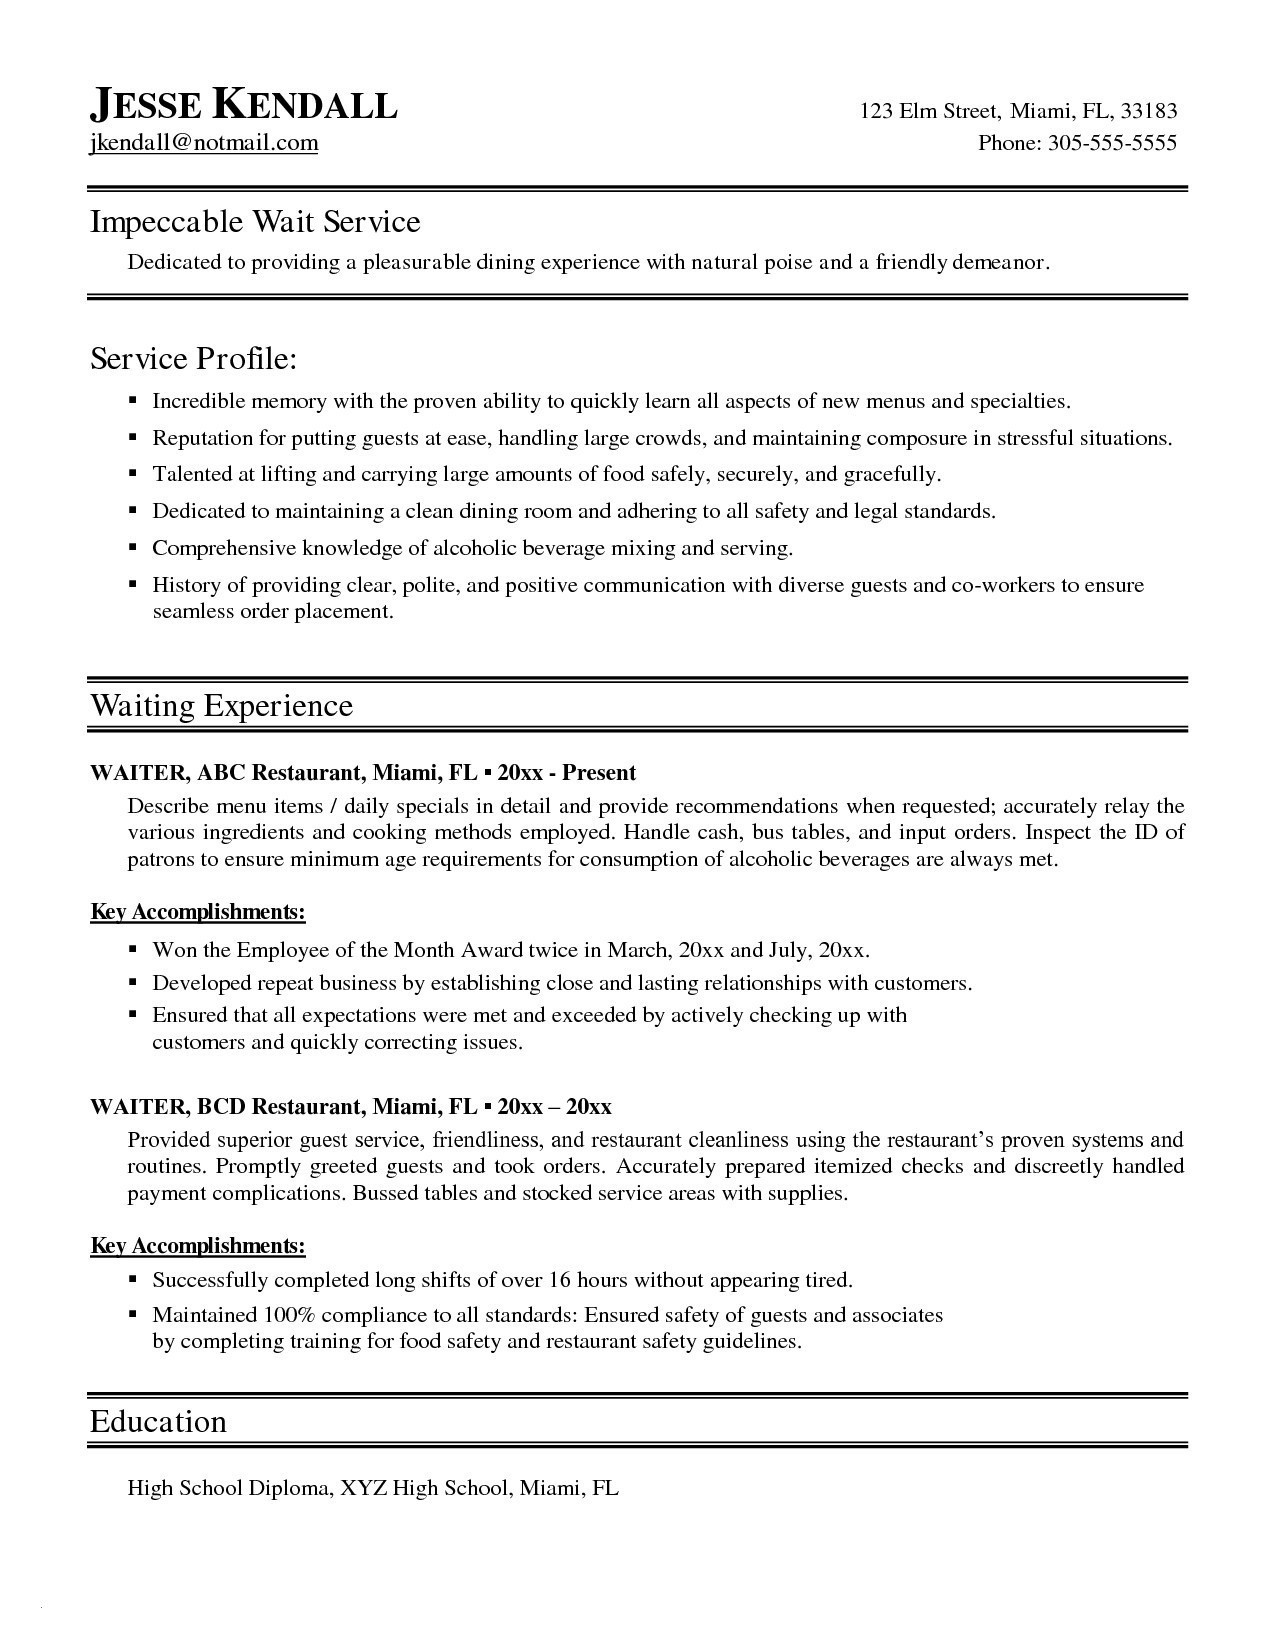 Can Resumes Be Double Sided - Double Sided Resume